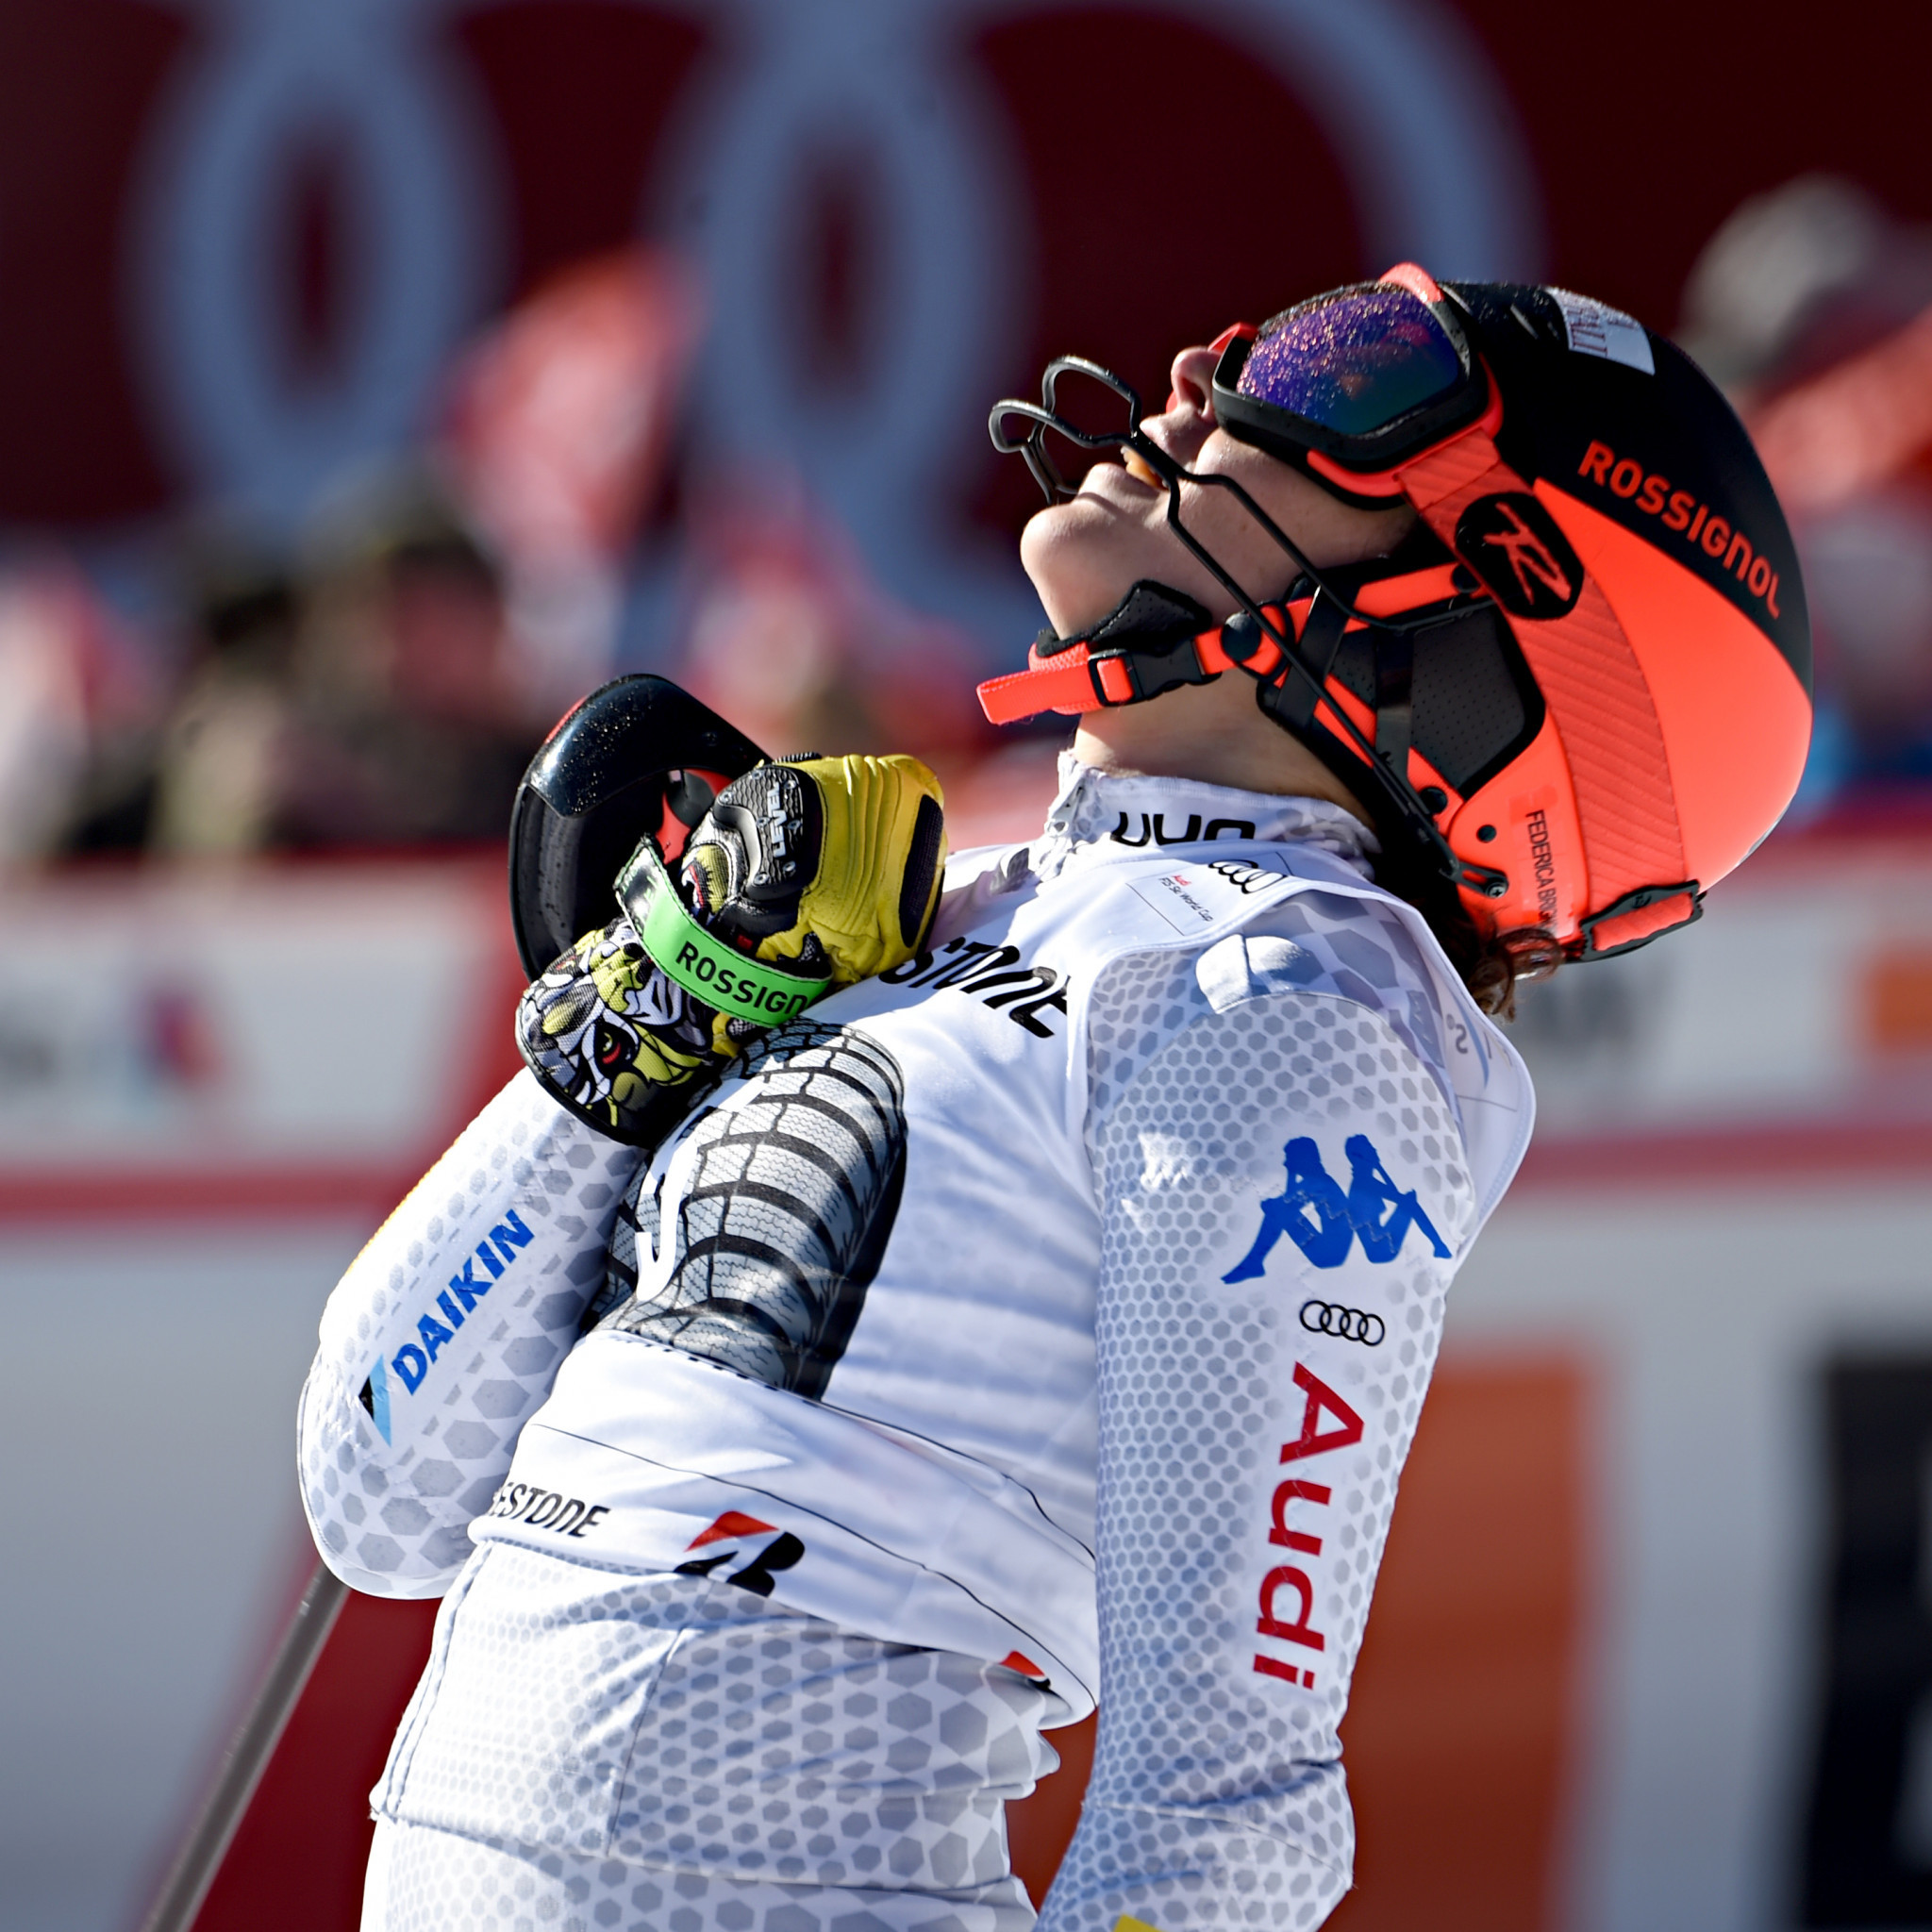 Federica Brignone won the Alpine combined in Crans-Montana for the third year in a row ©Getty Images